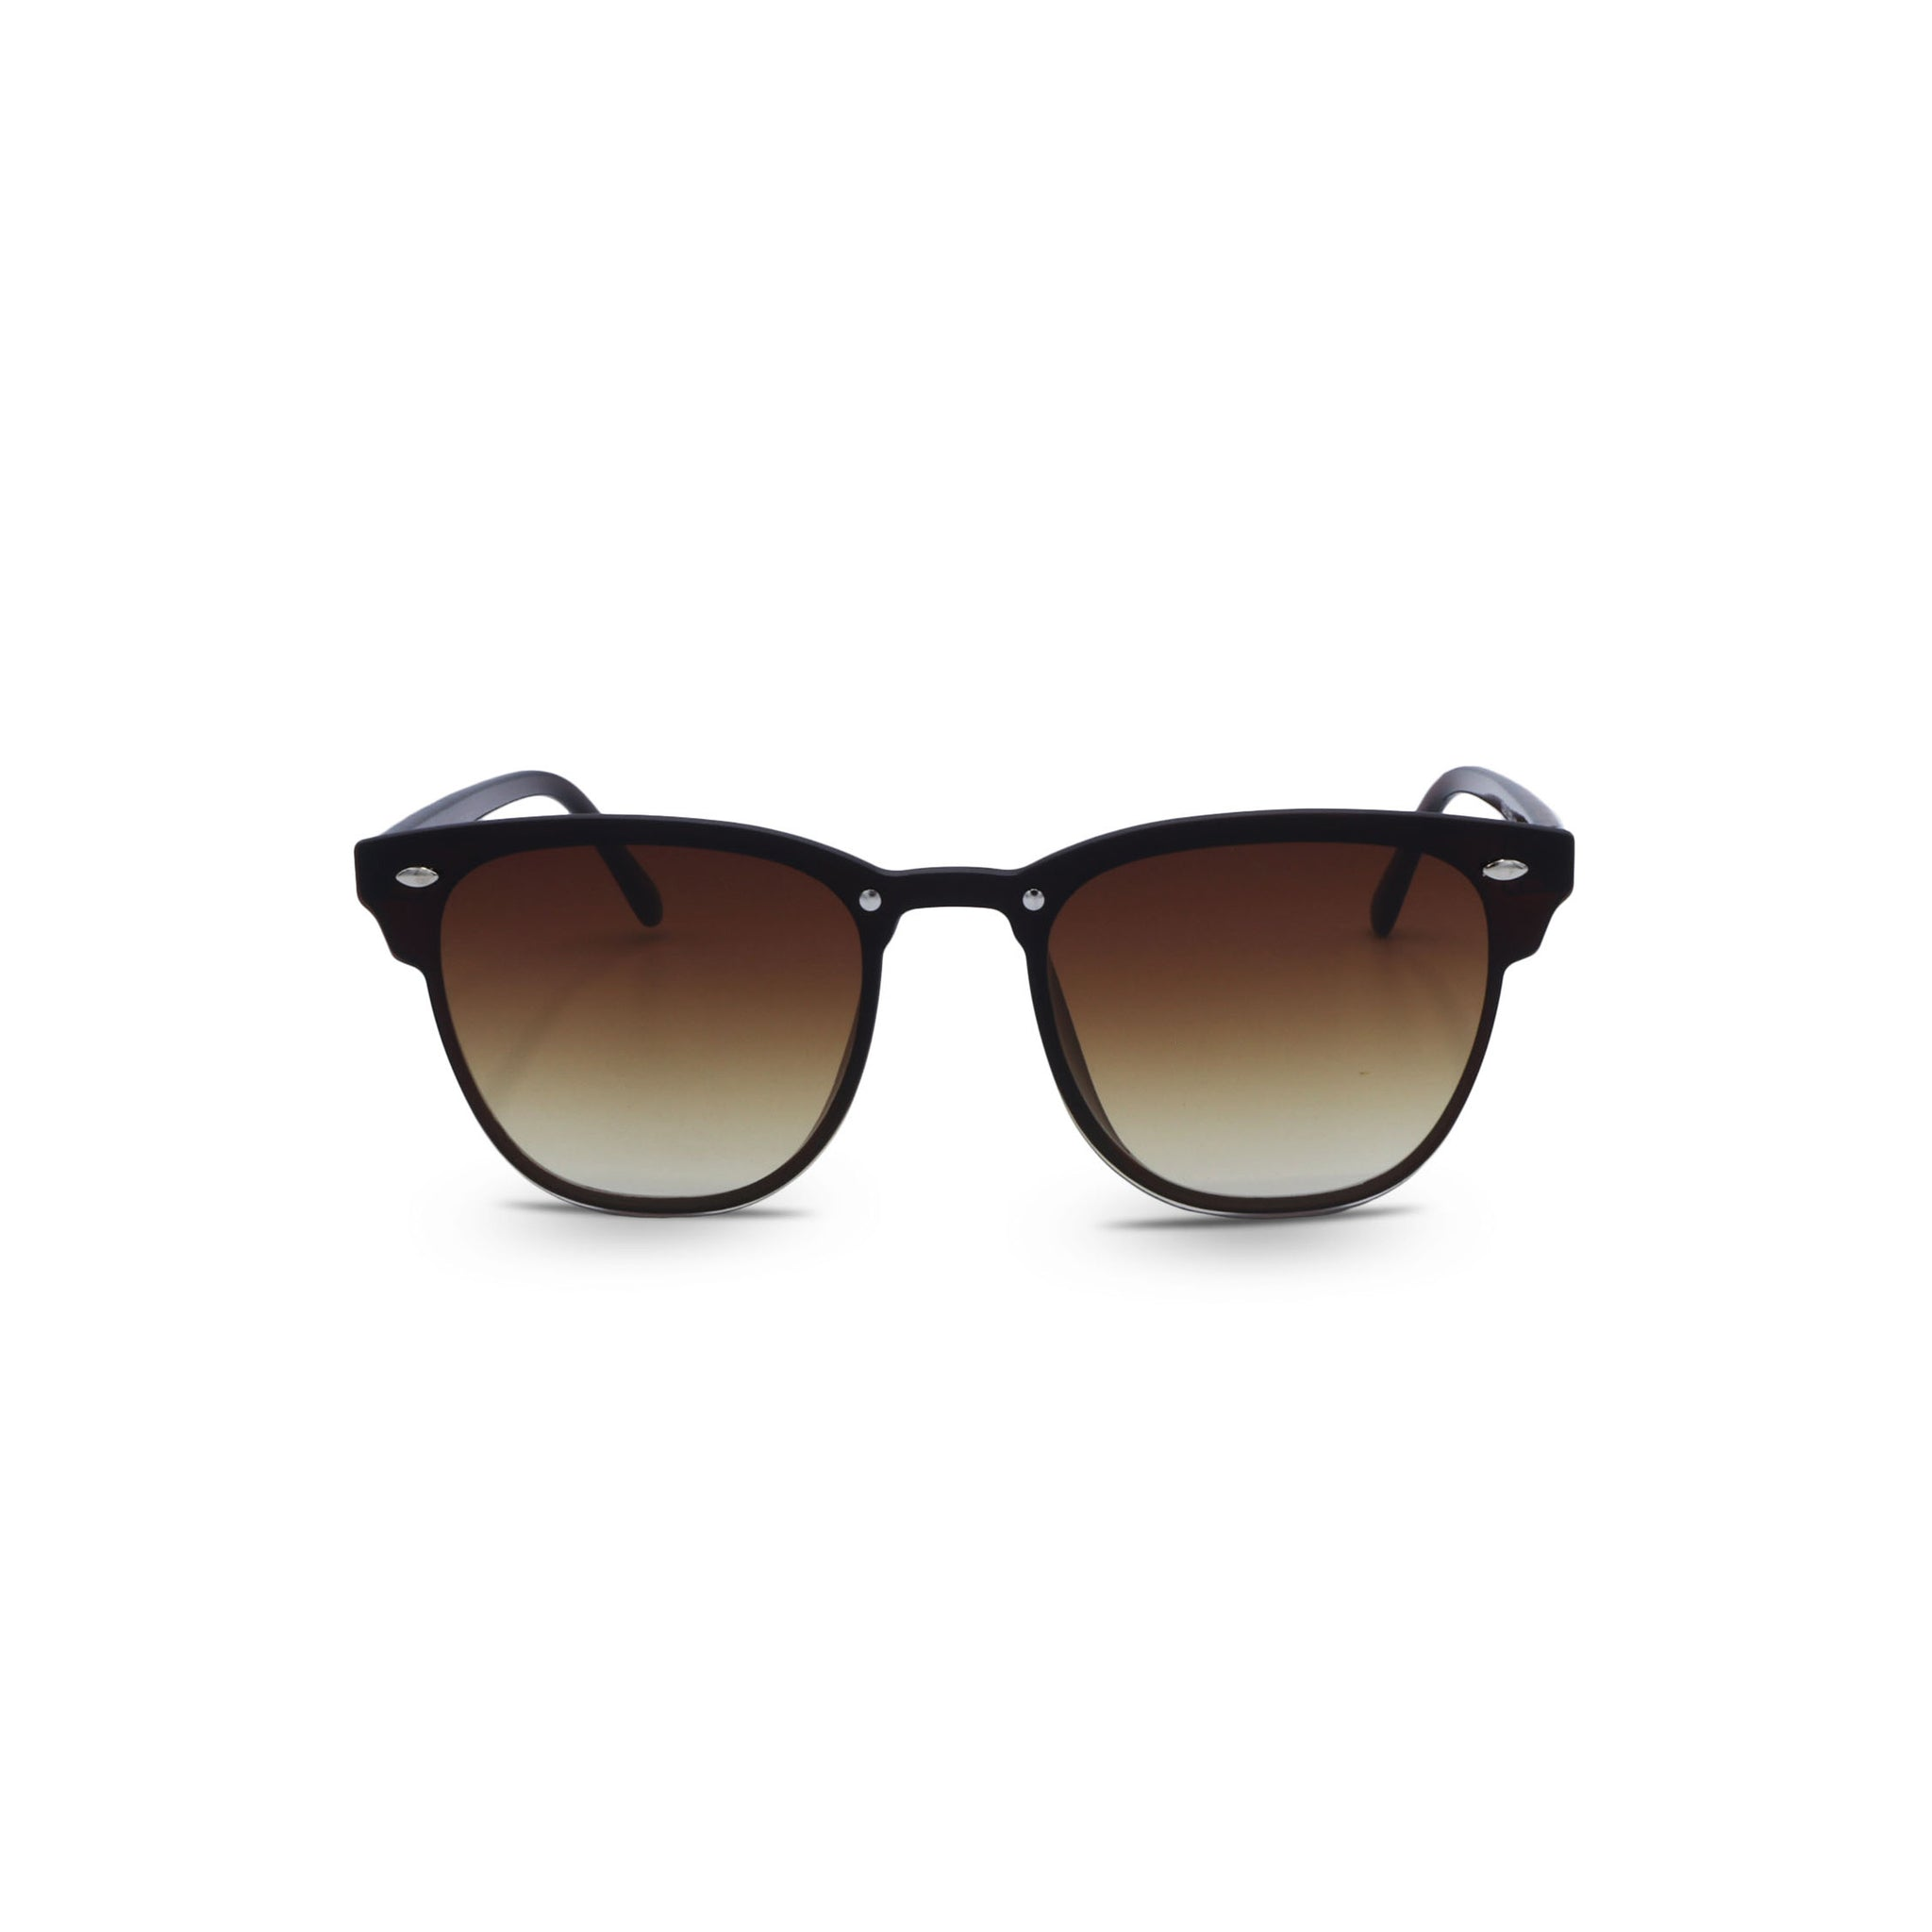 d6fdf03a02 ... Retro Hipster Sunglasses in Brown Color ...